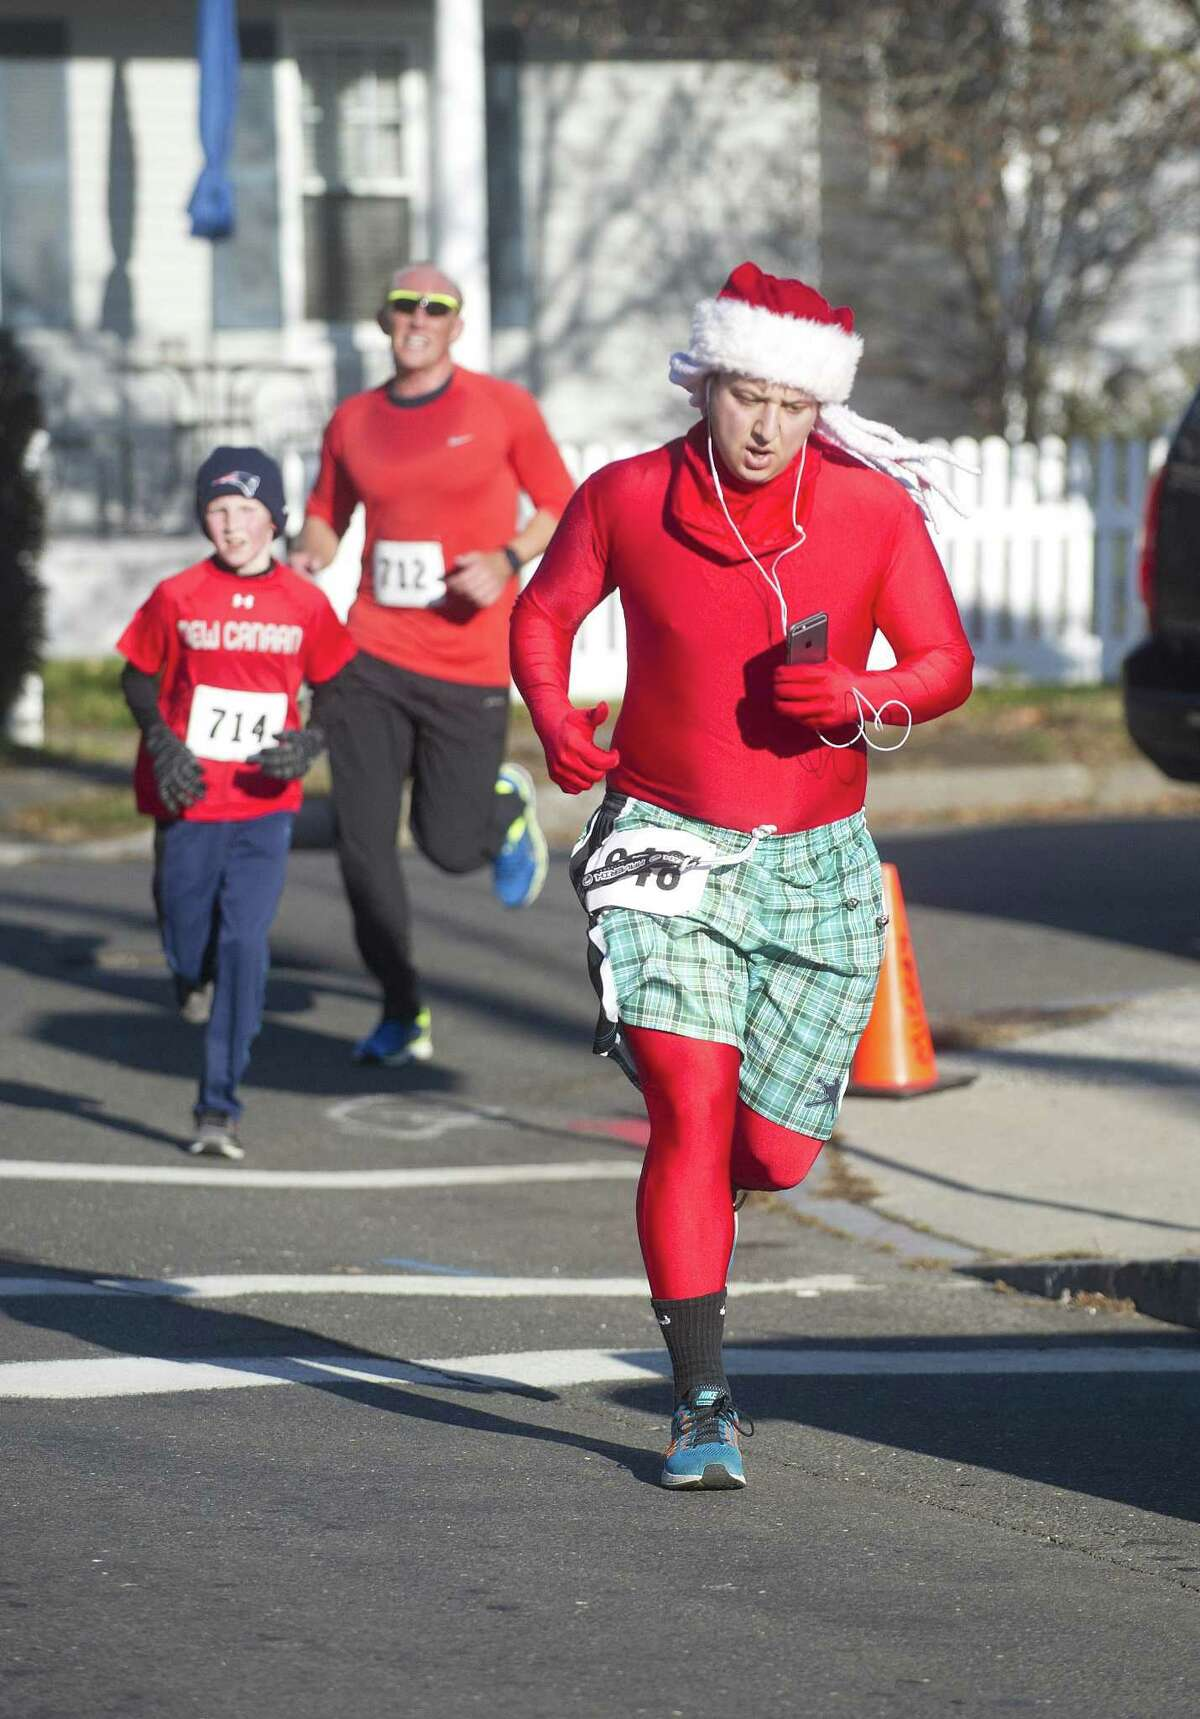 As part of its 2017 Hospital for Special Surgery Greenwich Cup, Threads and Treads invites festively clad runners, walkers and joggers to participate in the shop's 30th Annual William Raveis Jingle Bell Jog Sunday in downtown Greenwich. Find out more.